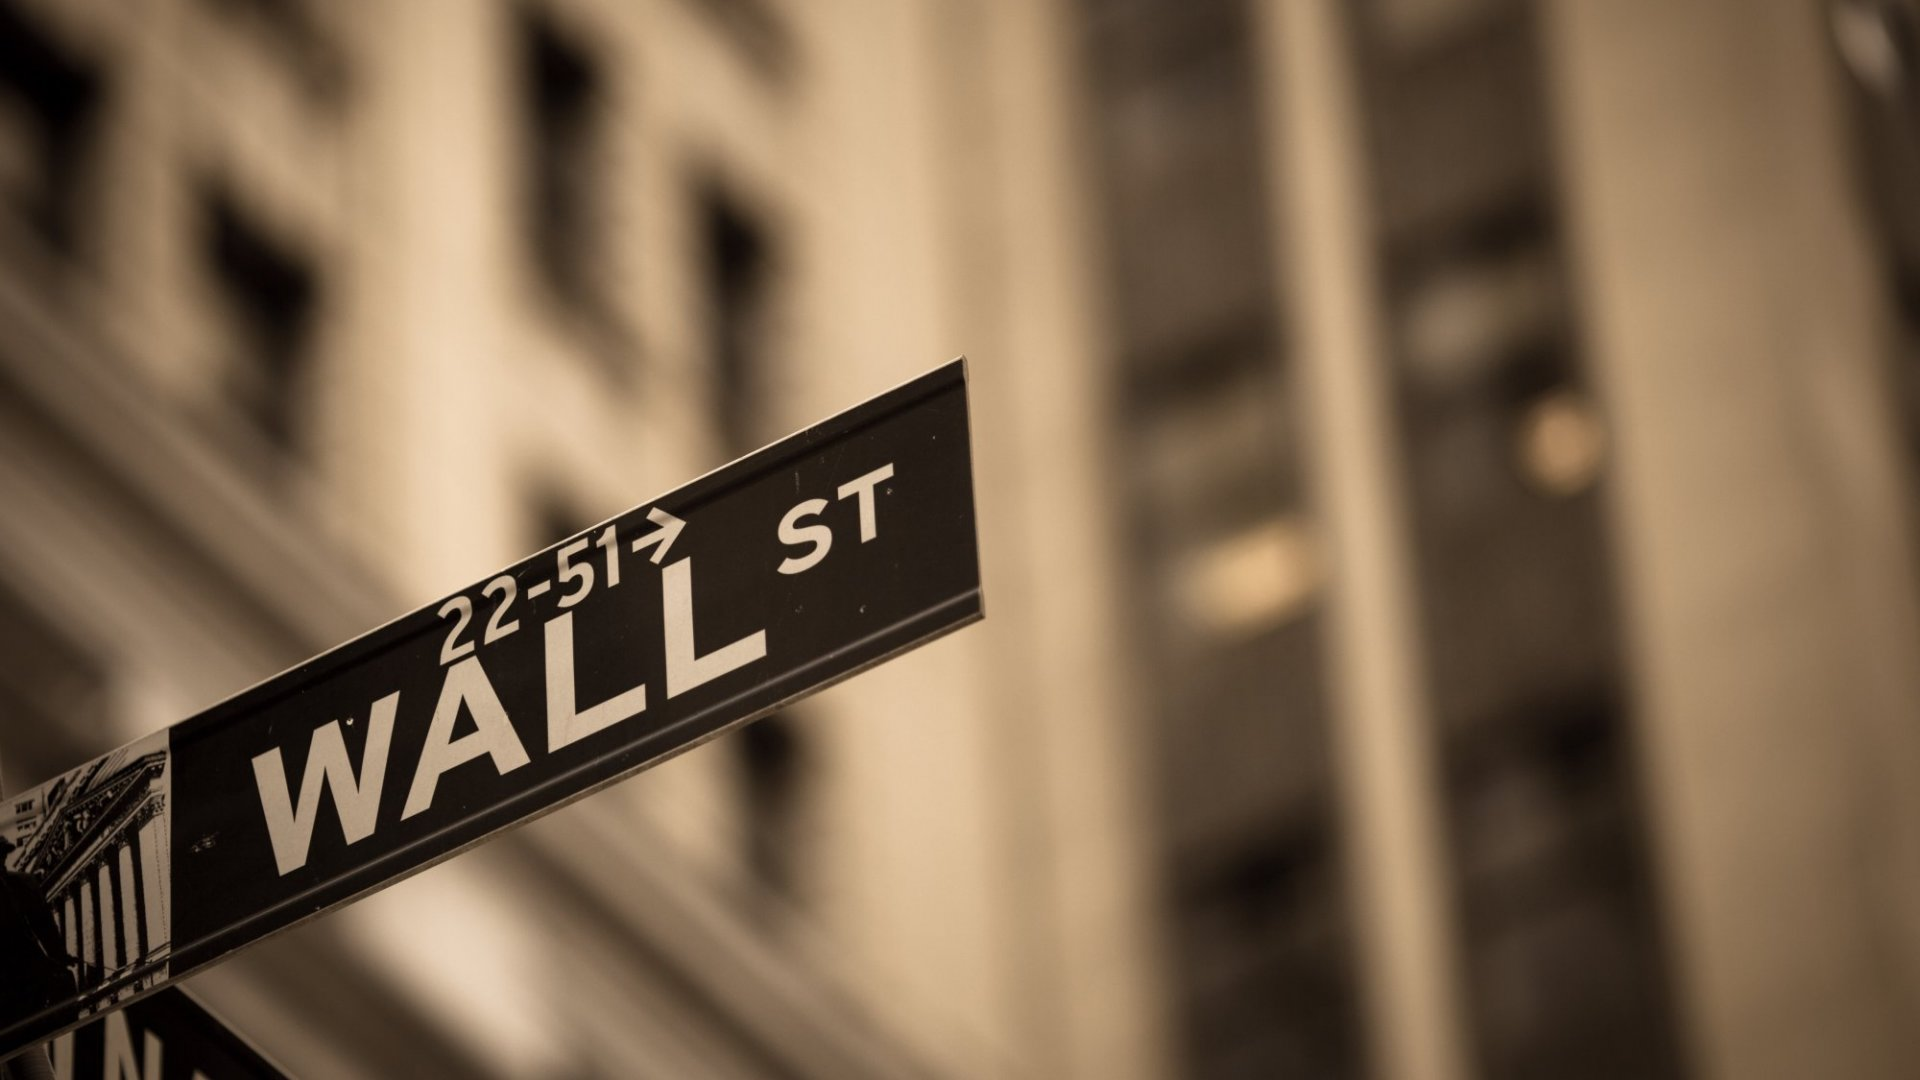 Wall Street and Silicon Valley Have Changed Dramatically in the Last 15 Years